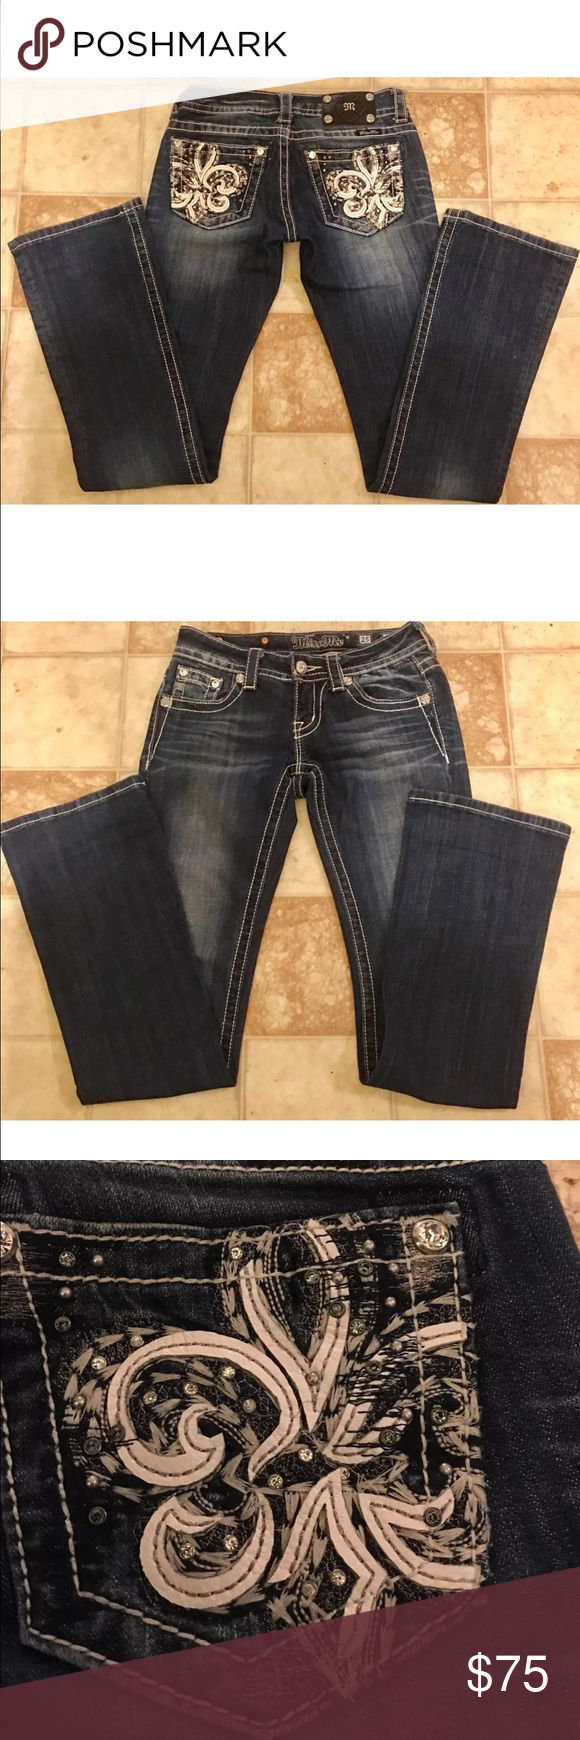 MISS ME Embellished Low Rise BootCut Jeans 25x34 BUCKLE MISS ME JEANS Gently used with no flaws. 